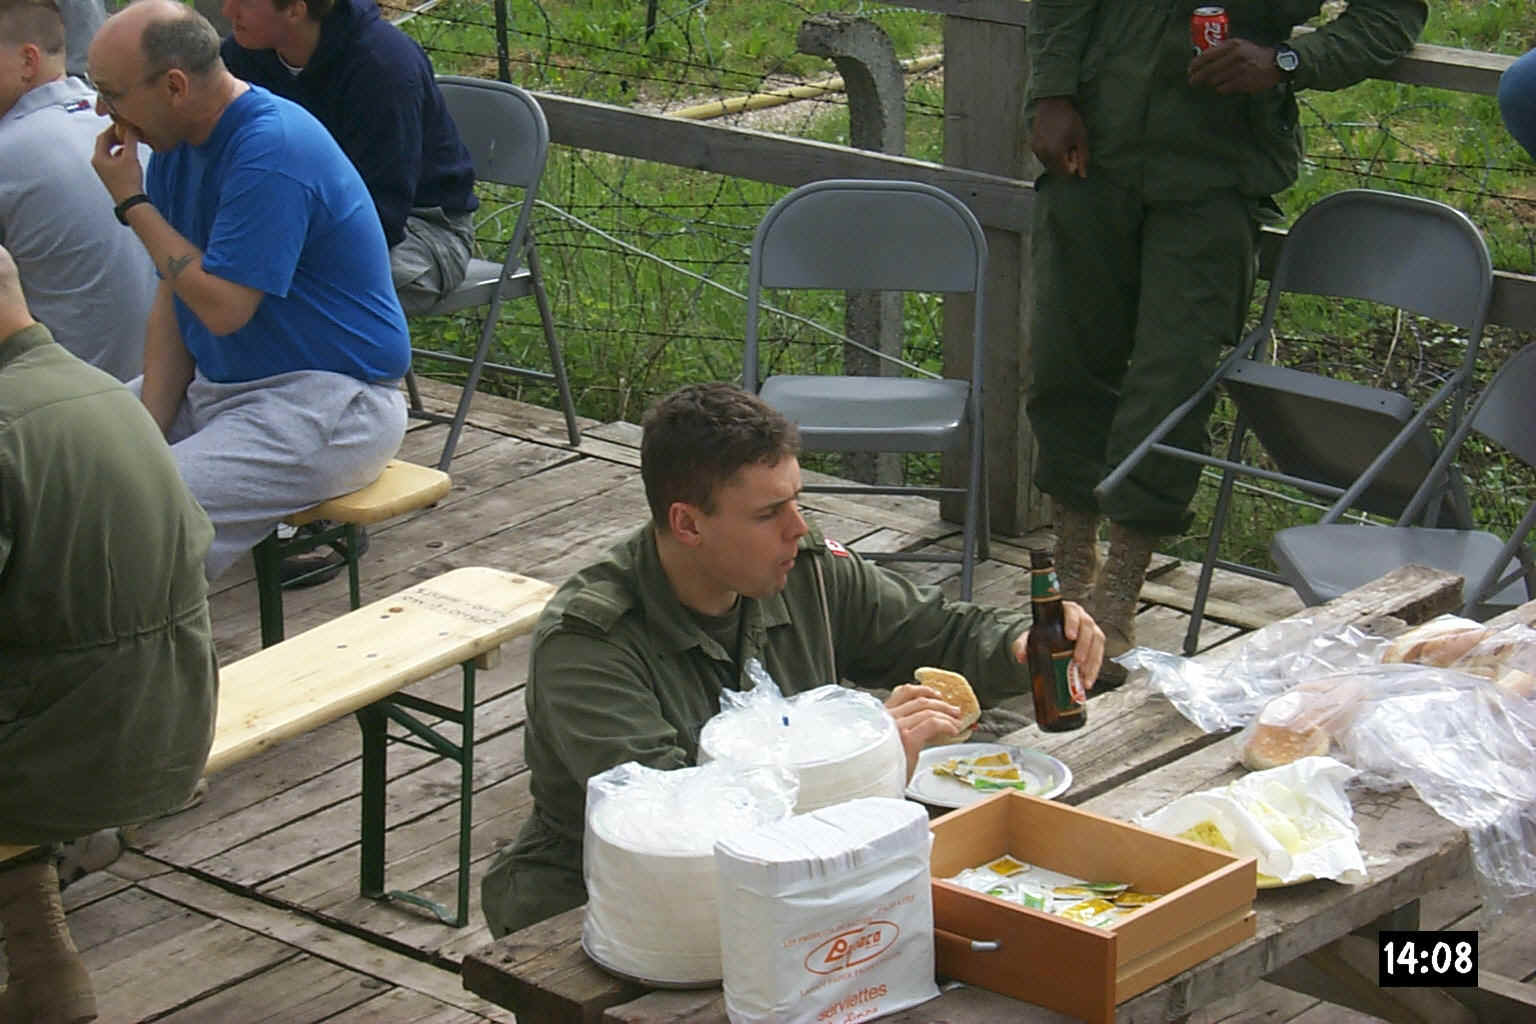 BBQ sitting with his friends.jpg (278182 bytes)